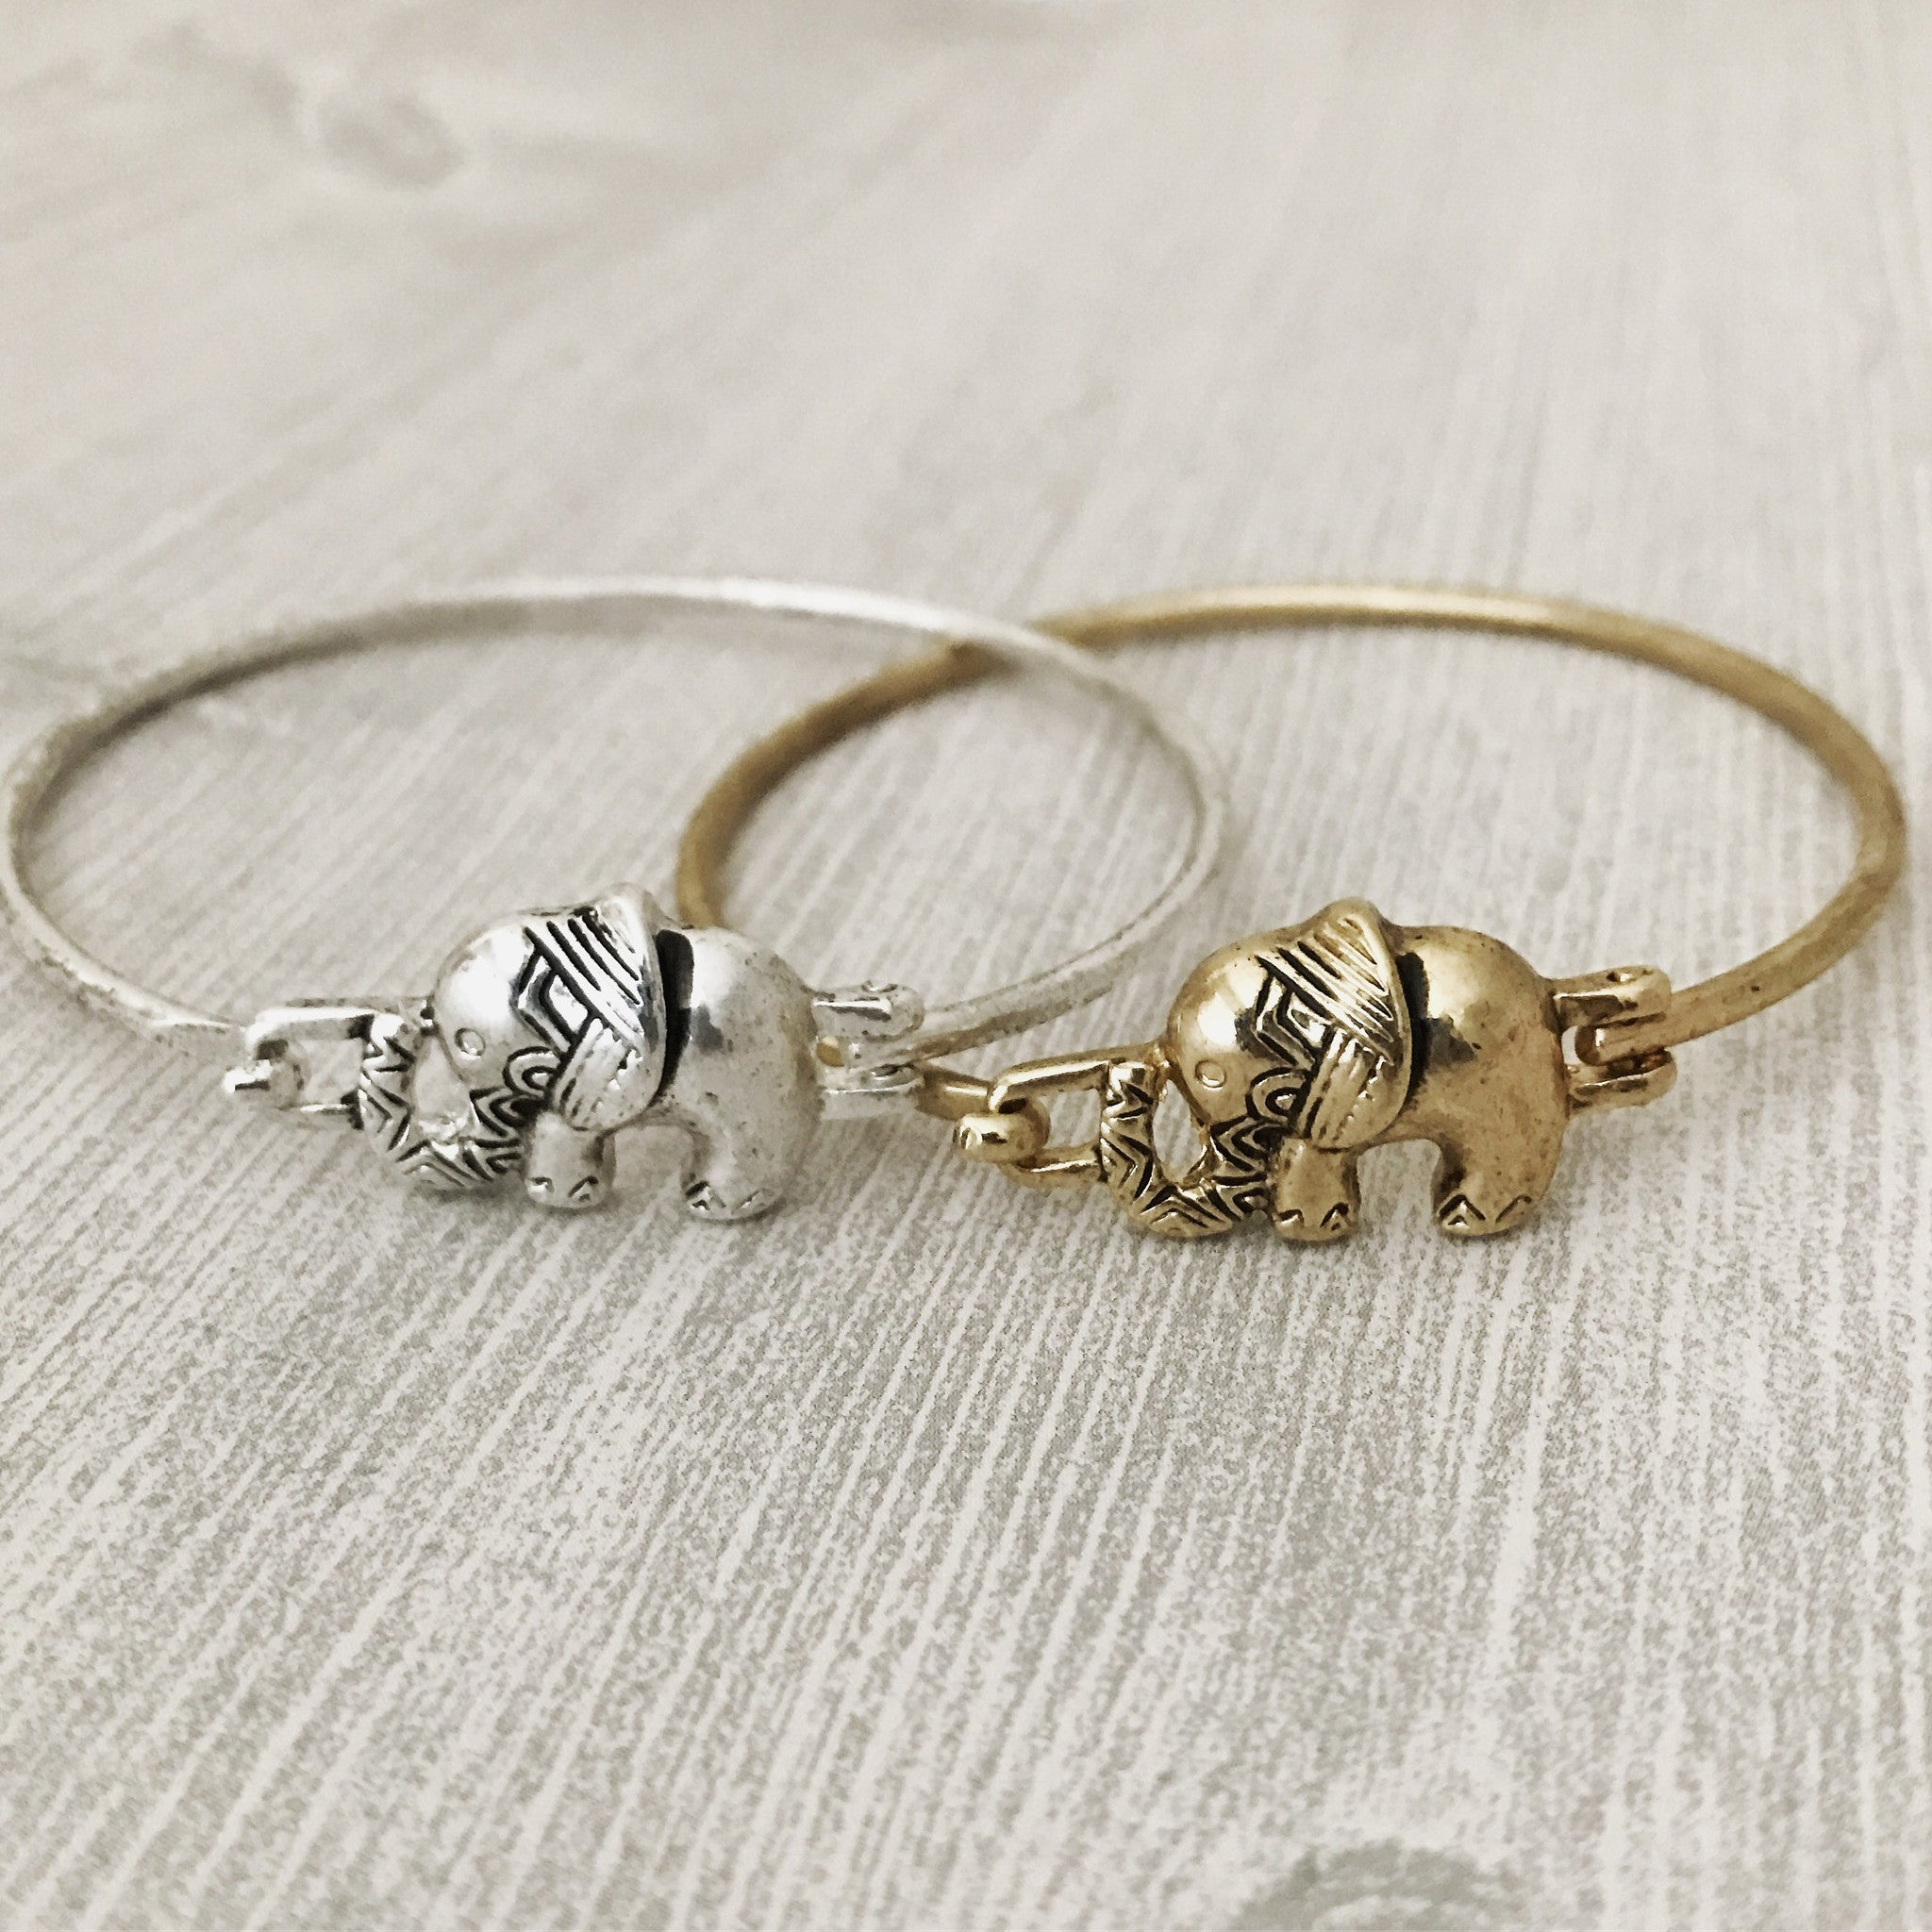 ANTIQUE ELEPHANT - Bracelet